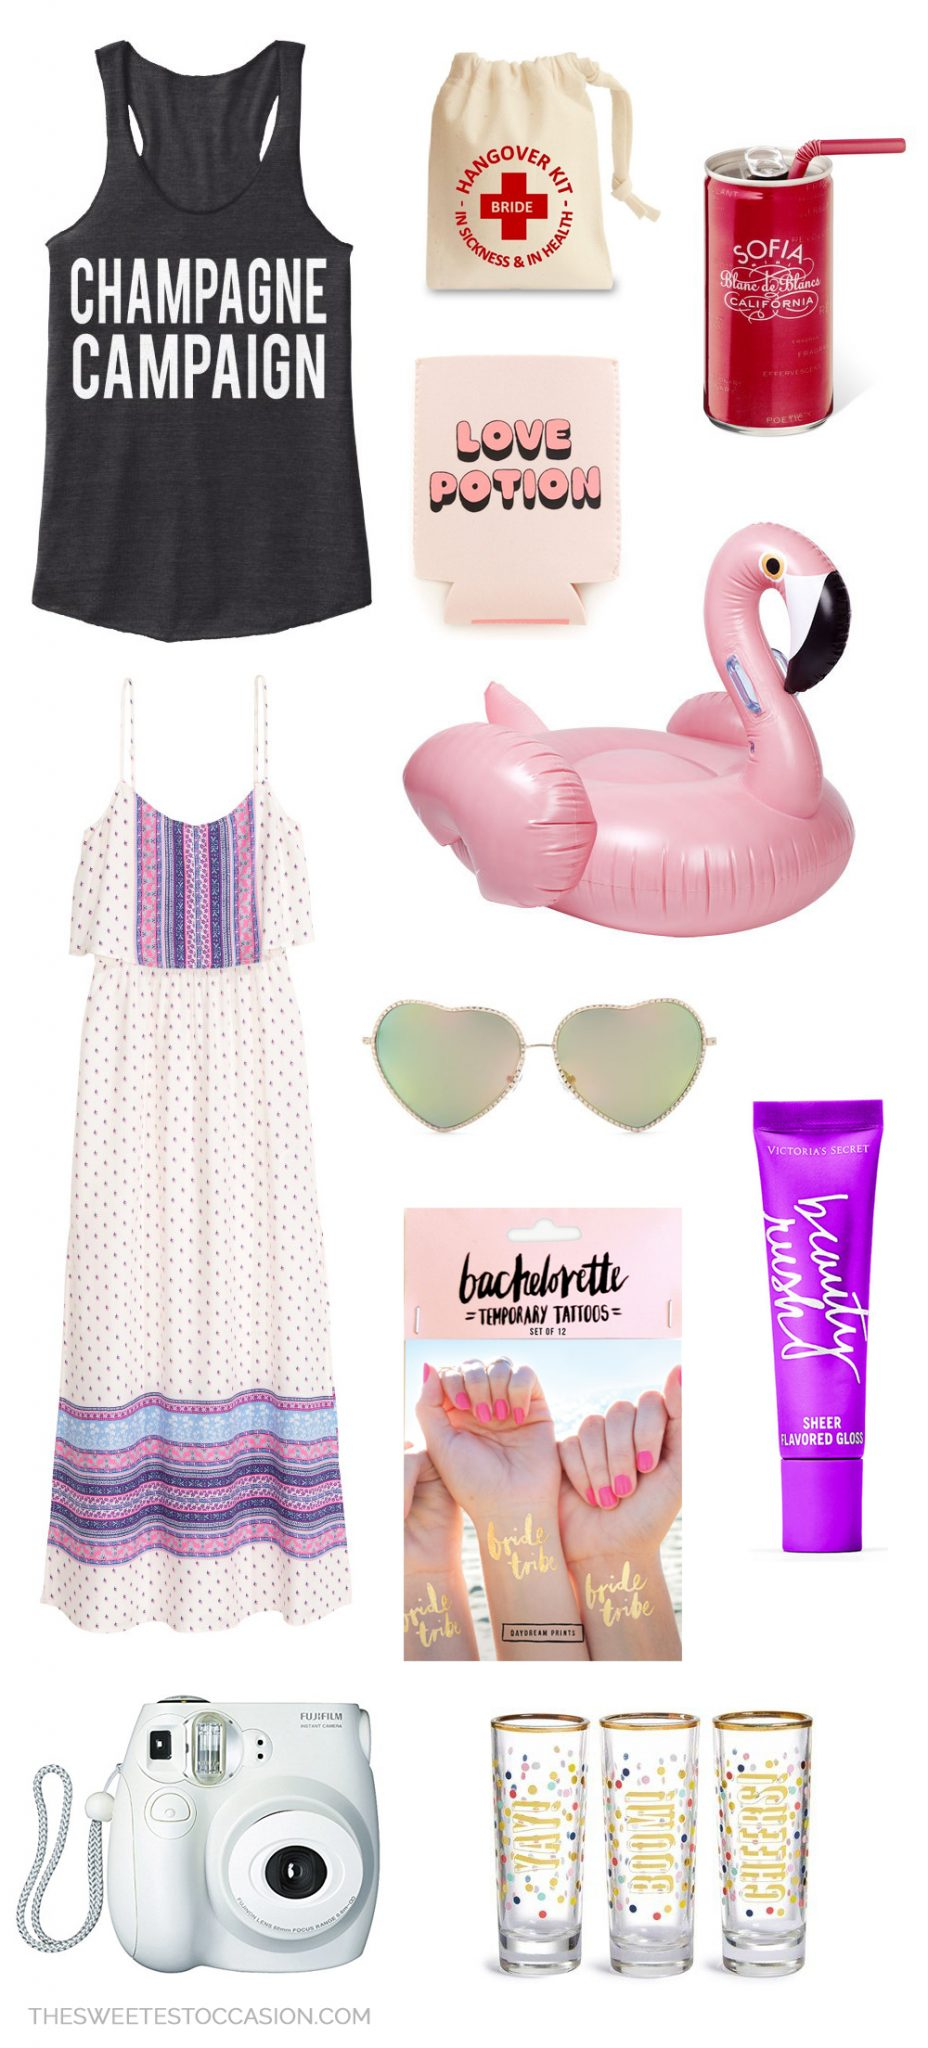 Bachelorette Weekend Essentials | Bachelorette party ideas and travel essentials from @cydconverse